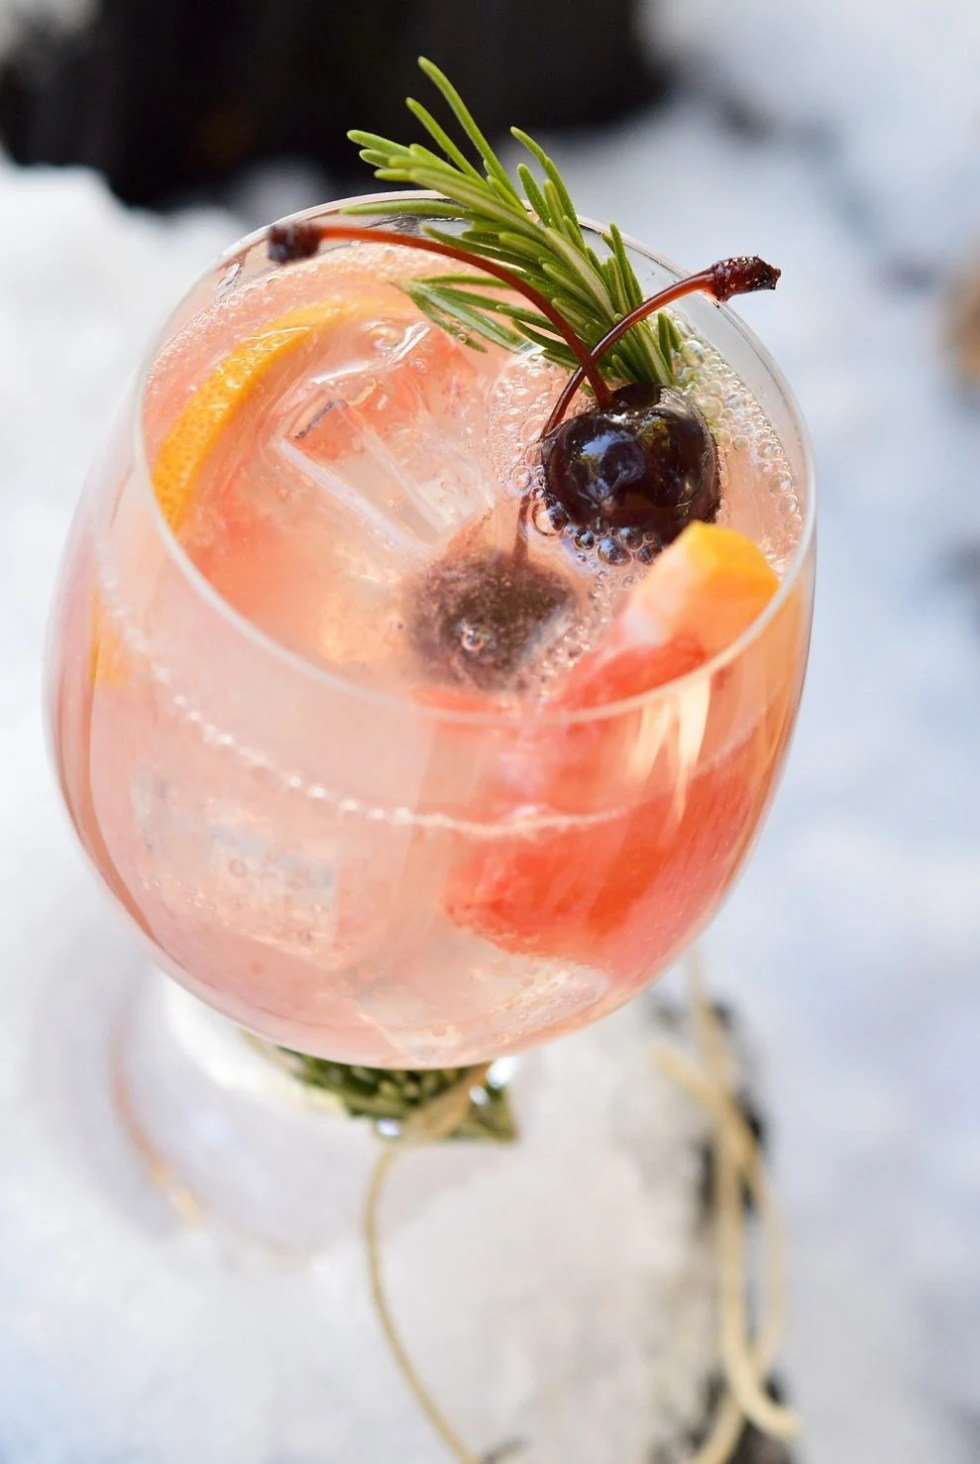 Celebrate snow days with thisGrapefruit Vodka Cocktail recipe. This winter cocktail is bold, refreshing and perfect for a snowy picnic!